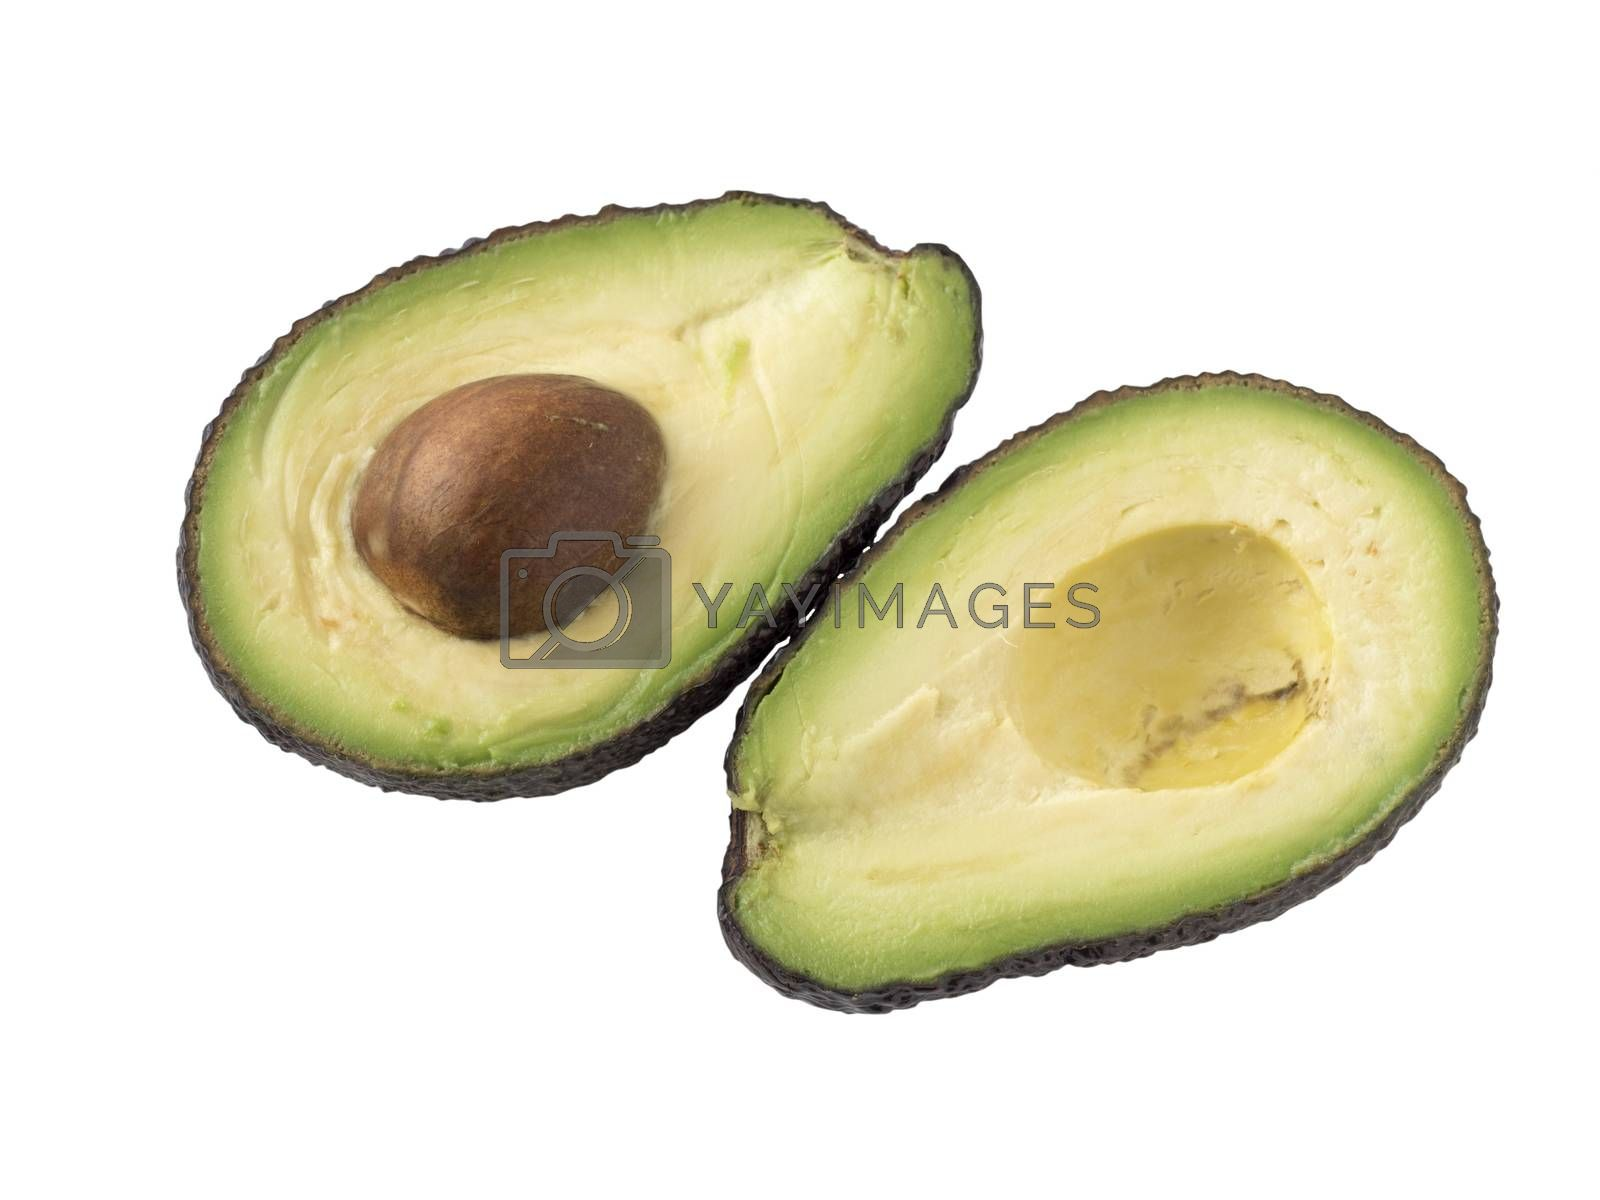 Royalty free image of Avocado isolated on white background. by phortcach